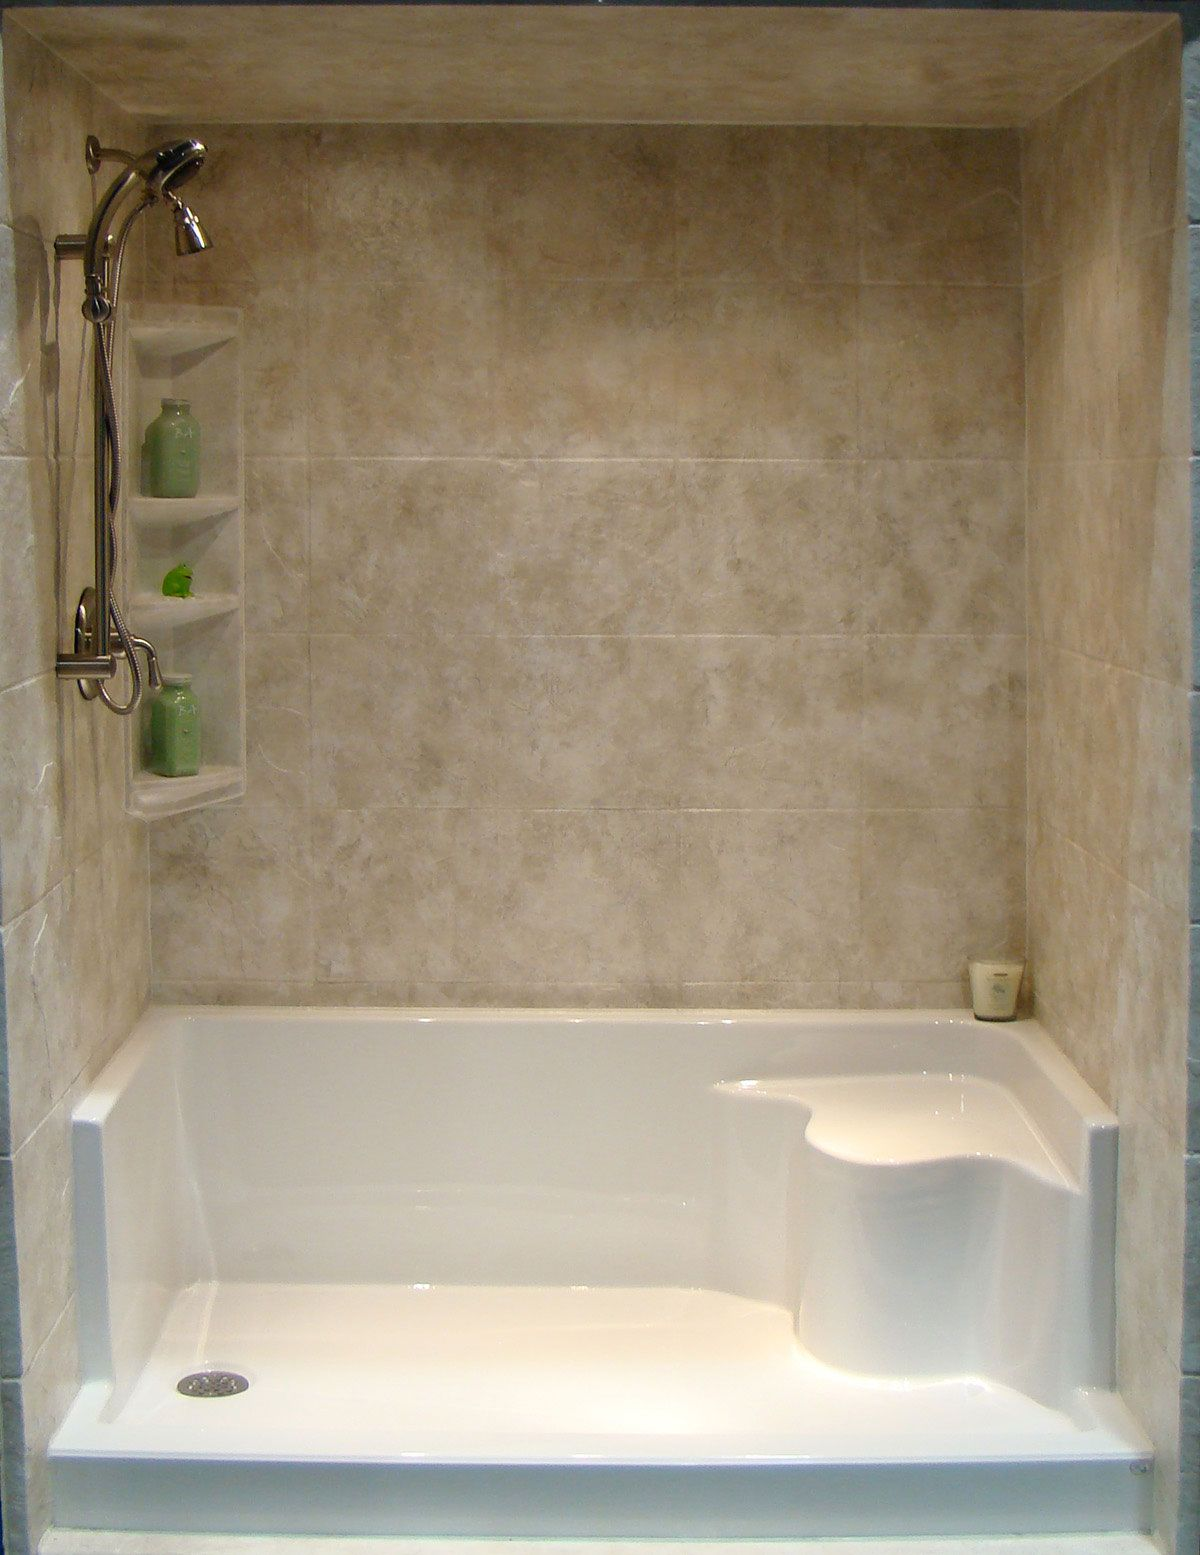 tub to shower converter tub an shower conversion ideas bathtub refinishing tub 6389